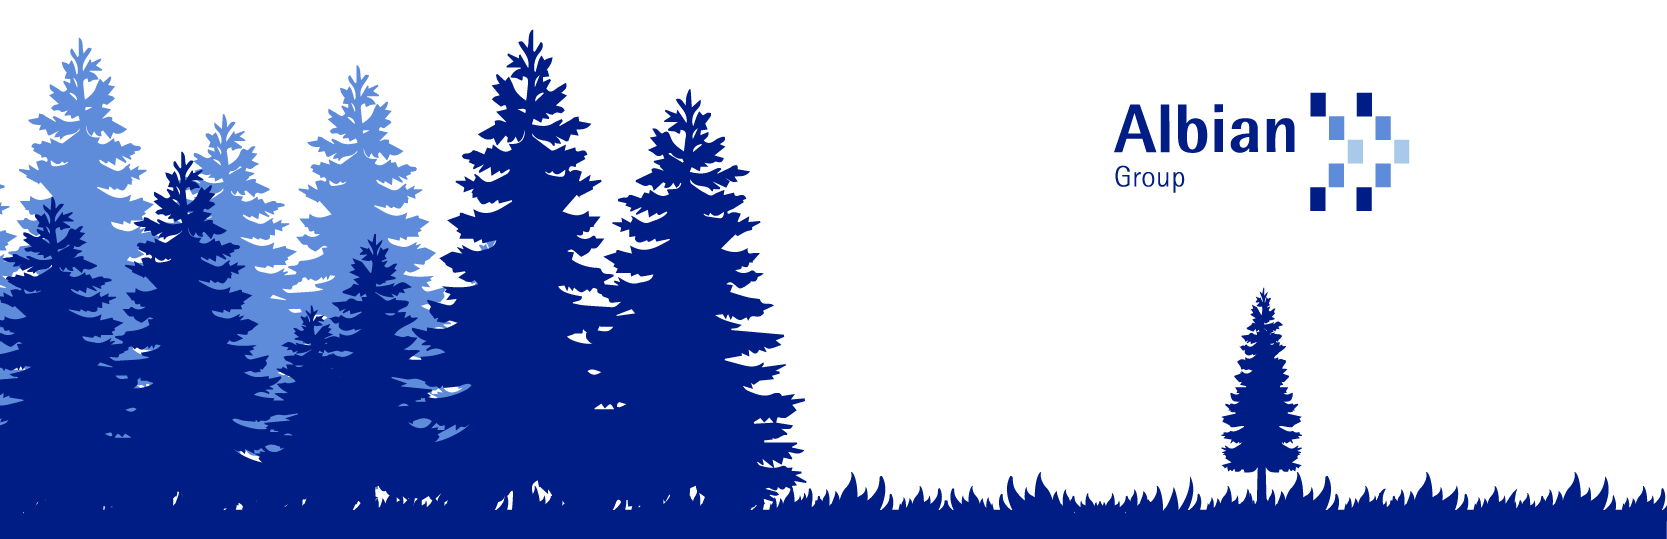 Albian Group forest